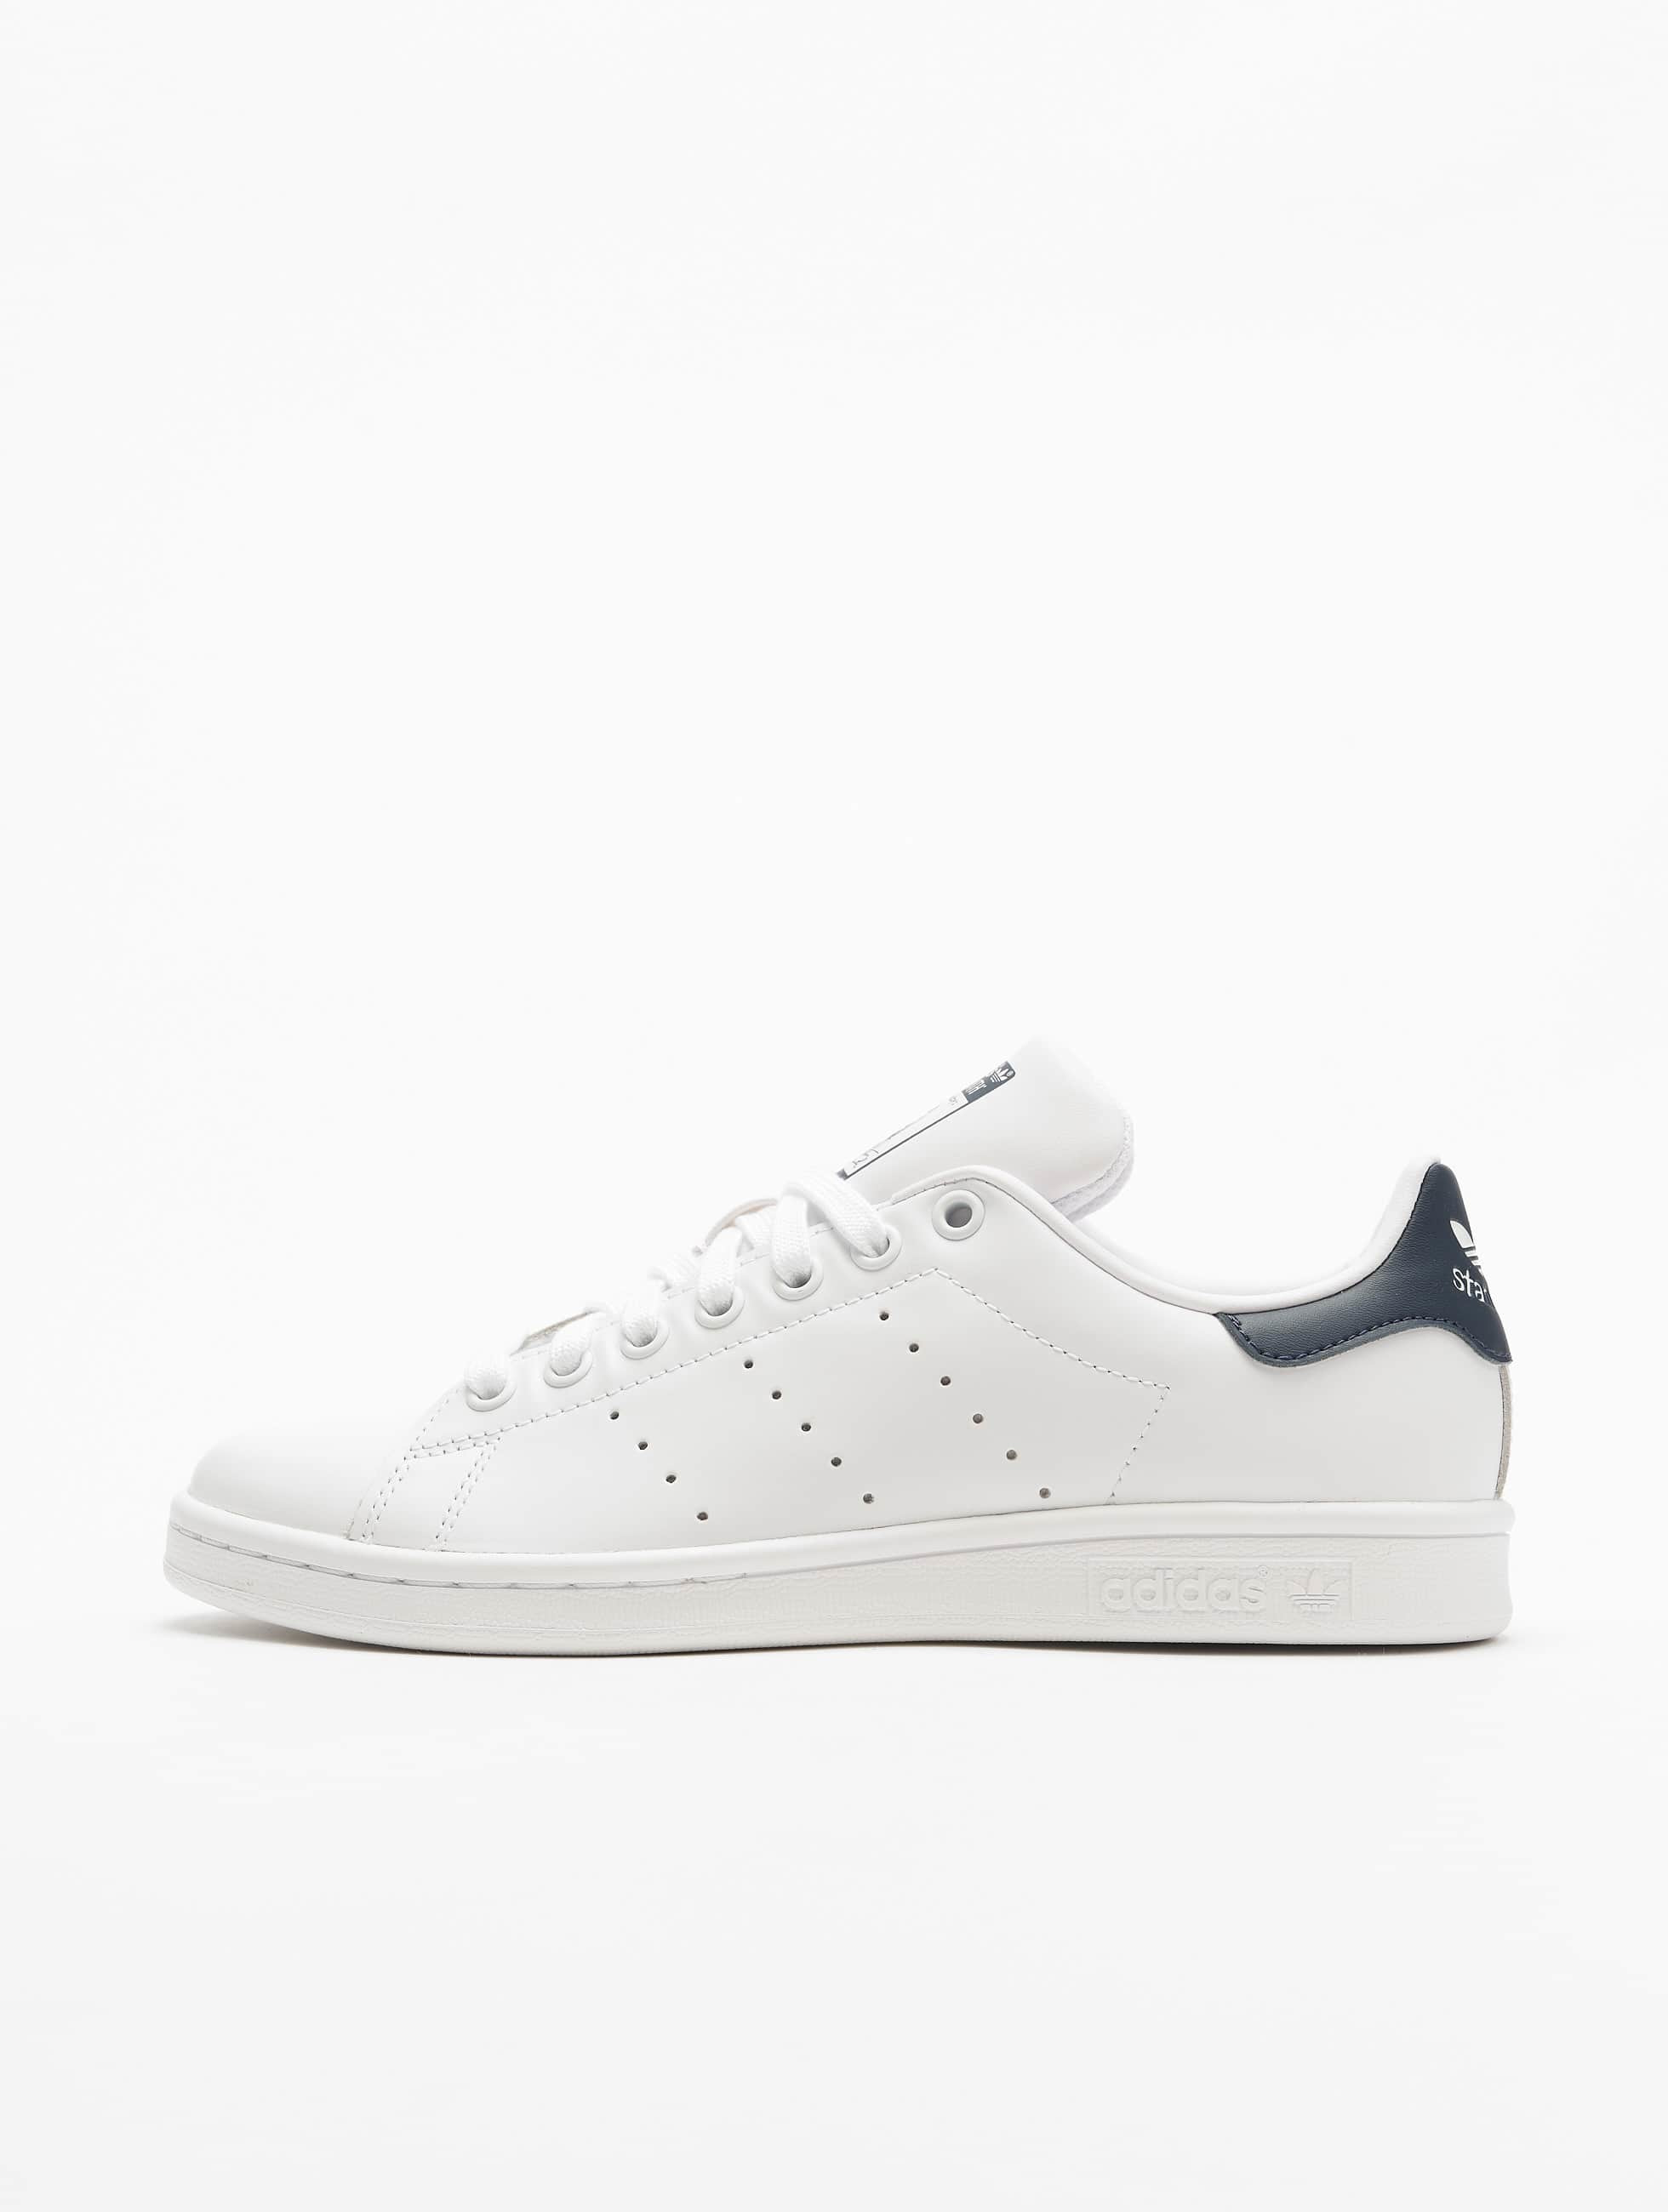 Stan Smith Adidas Männer